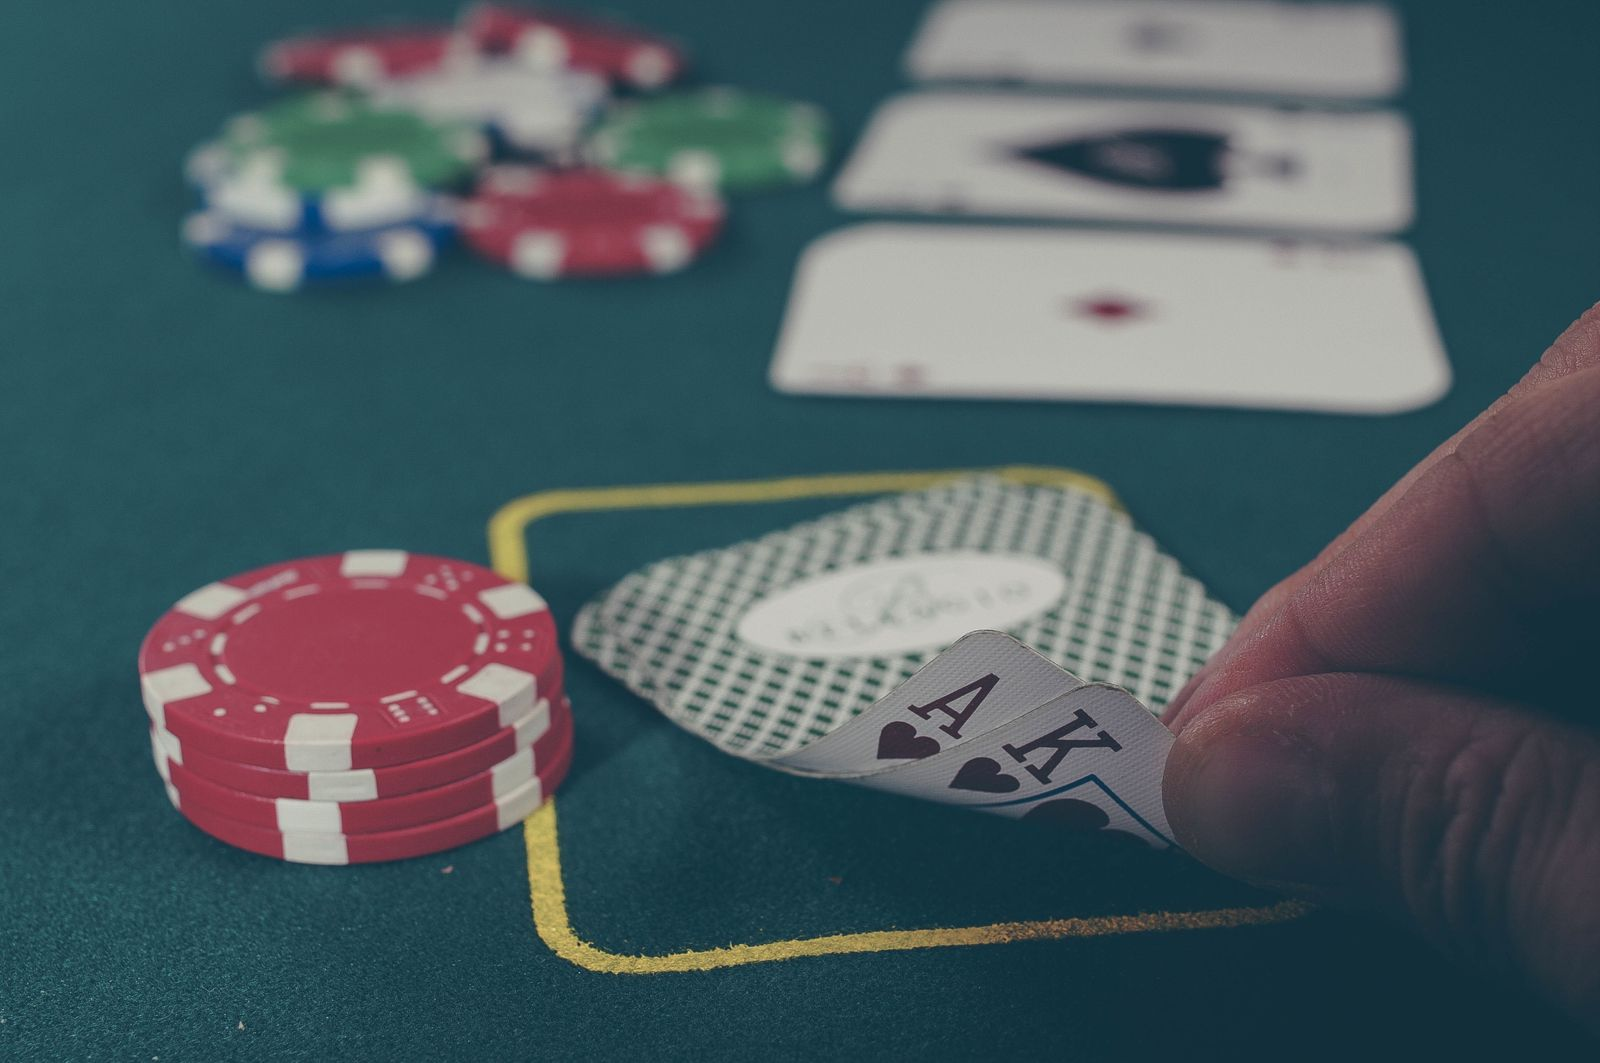 Don't Fall For This Casino Scam